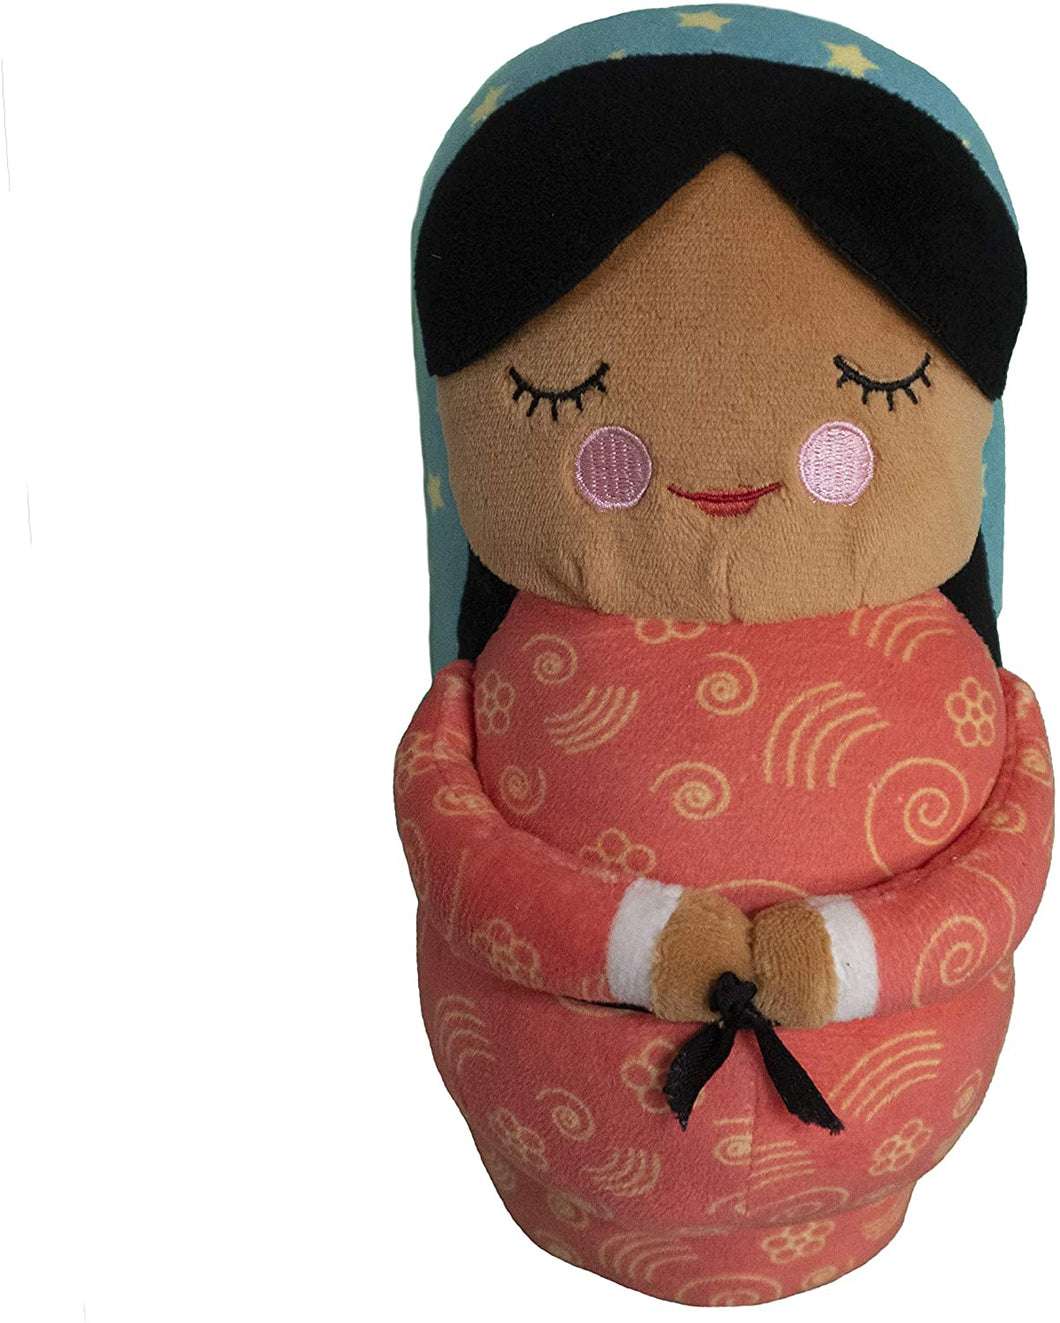 Shining Light Dolls Our Lady of Guadalupe Plush Doll